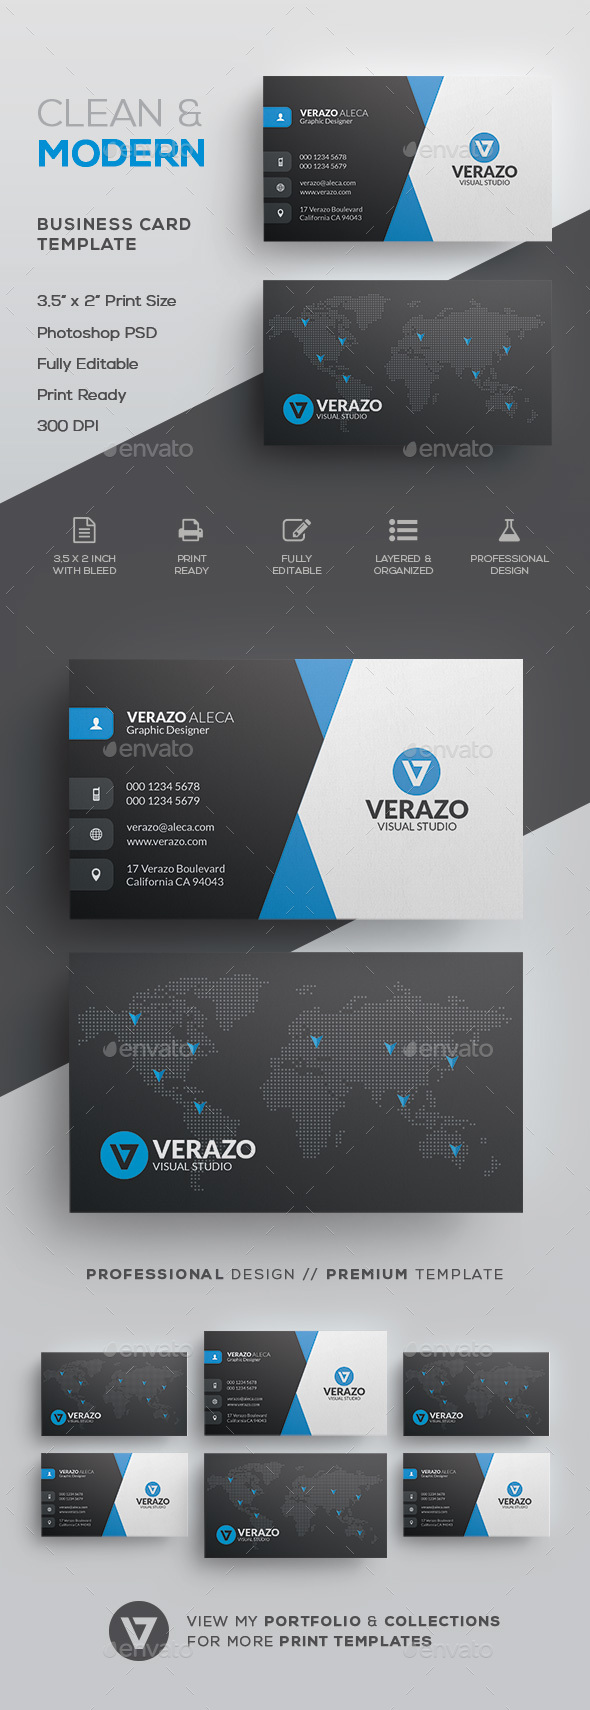 Clean & Modern Corporate Business Card Template - Corporate Business Cards